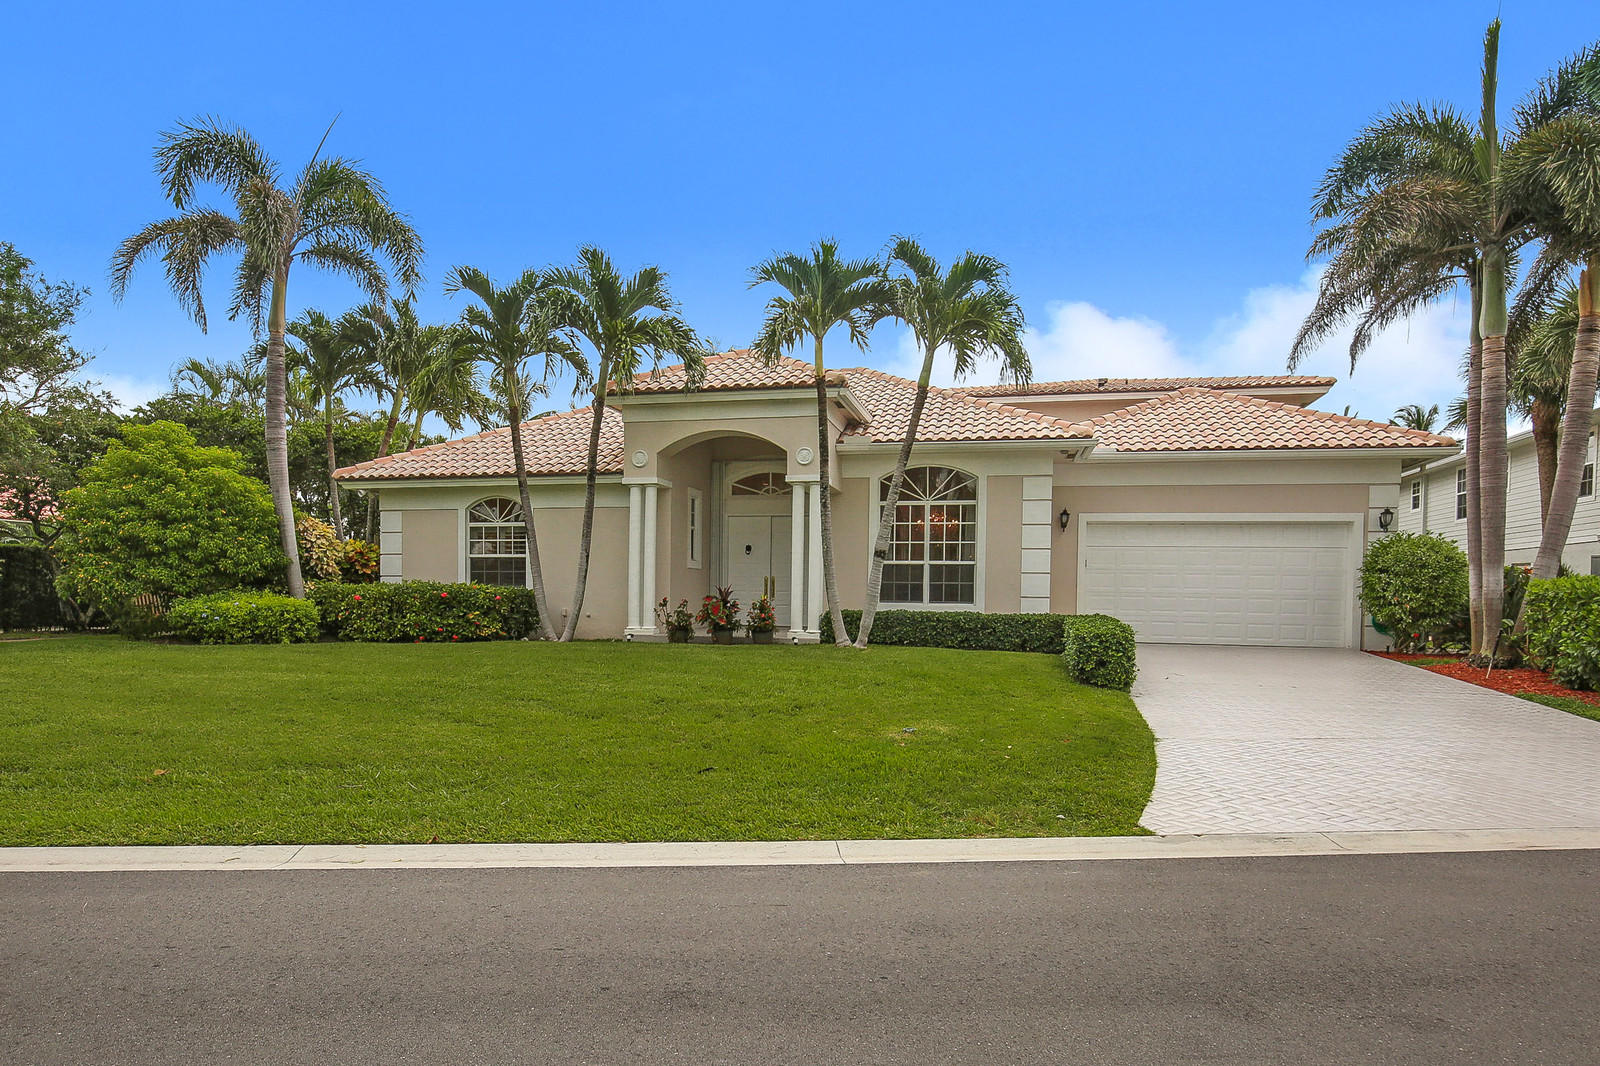 New Home for sale at 56 Colony Road in Jupiter Inlet Colony